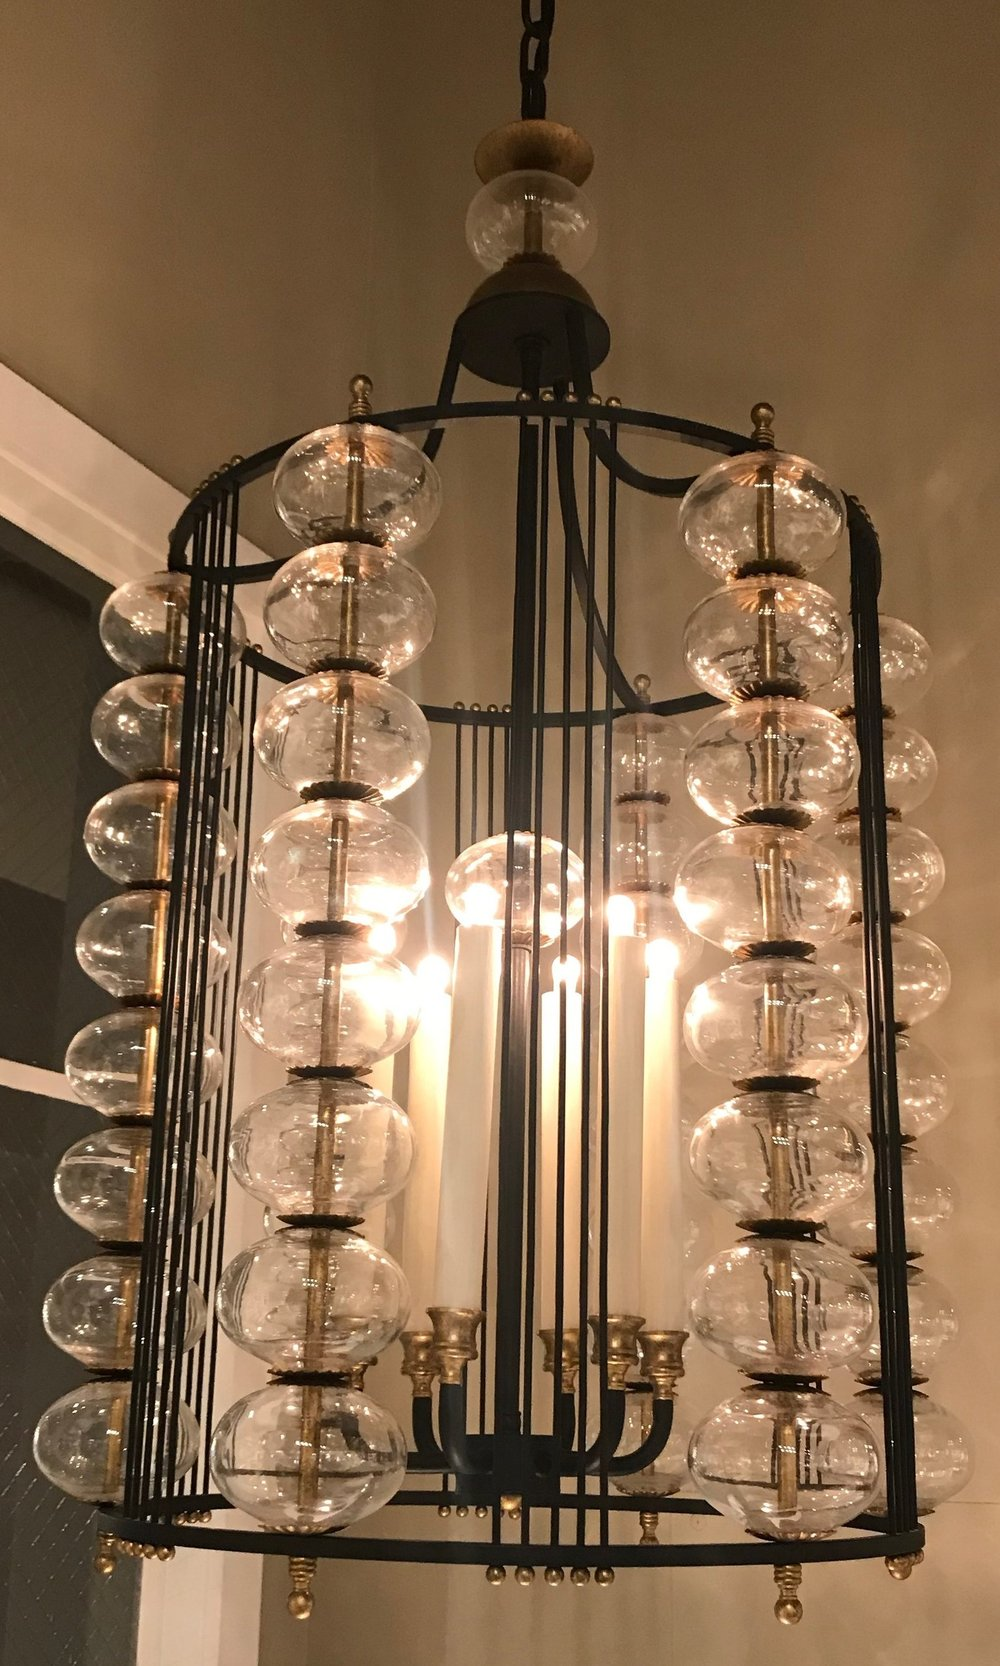 Lights & Lighting Chandeliers Conscientious Old Fashion Retro Vintage Style Industrial Chandelier Antique Glass Lamp Wall Sconce Harmonious Colors